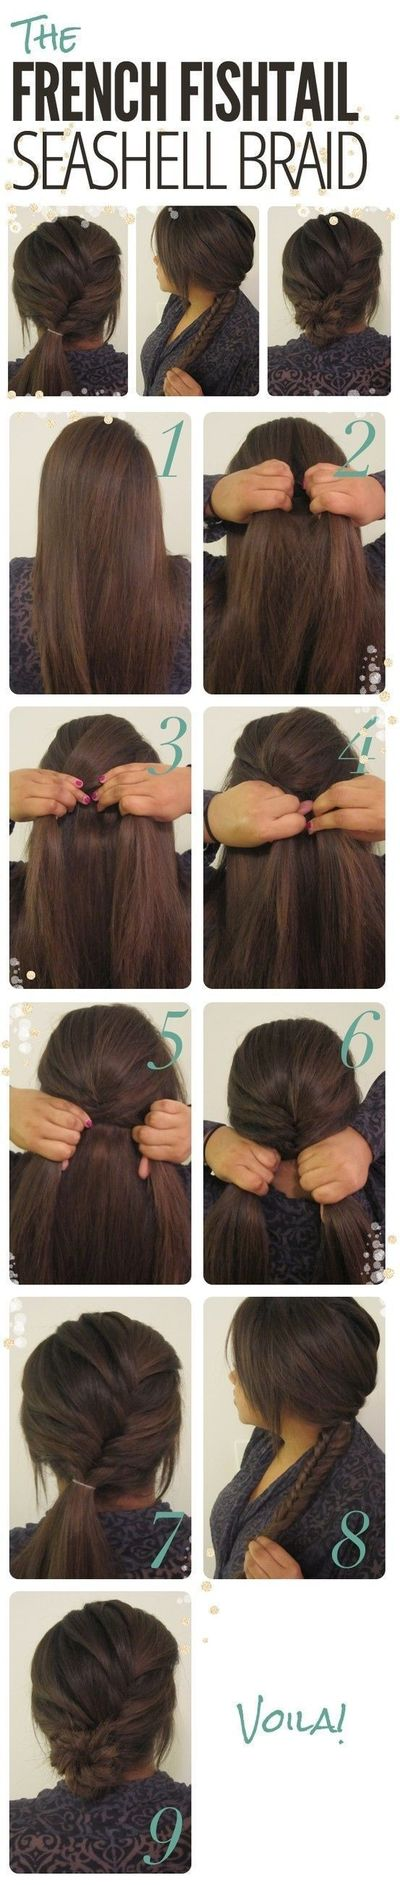 Cool DIY hairstyles for girls (12)